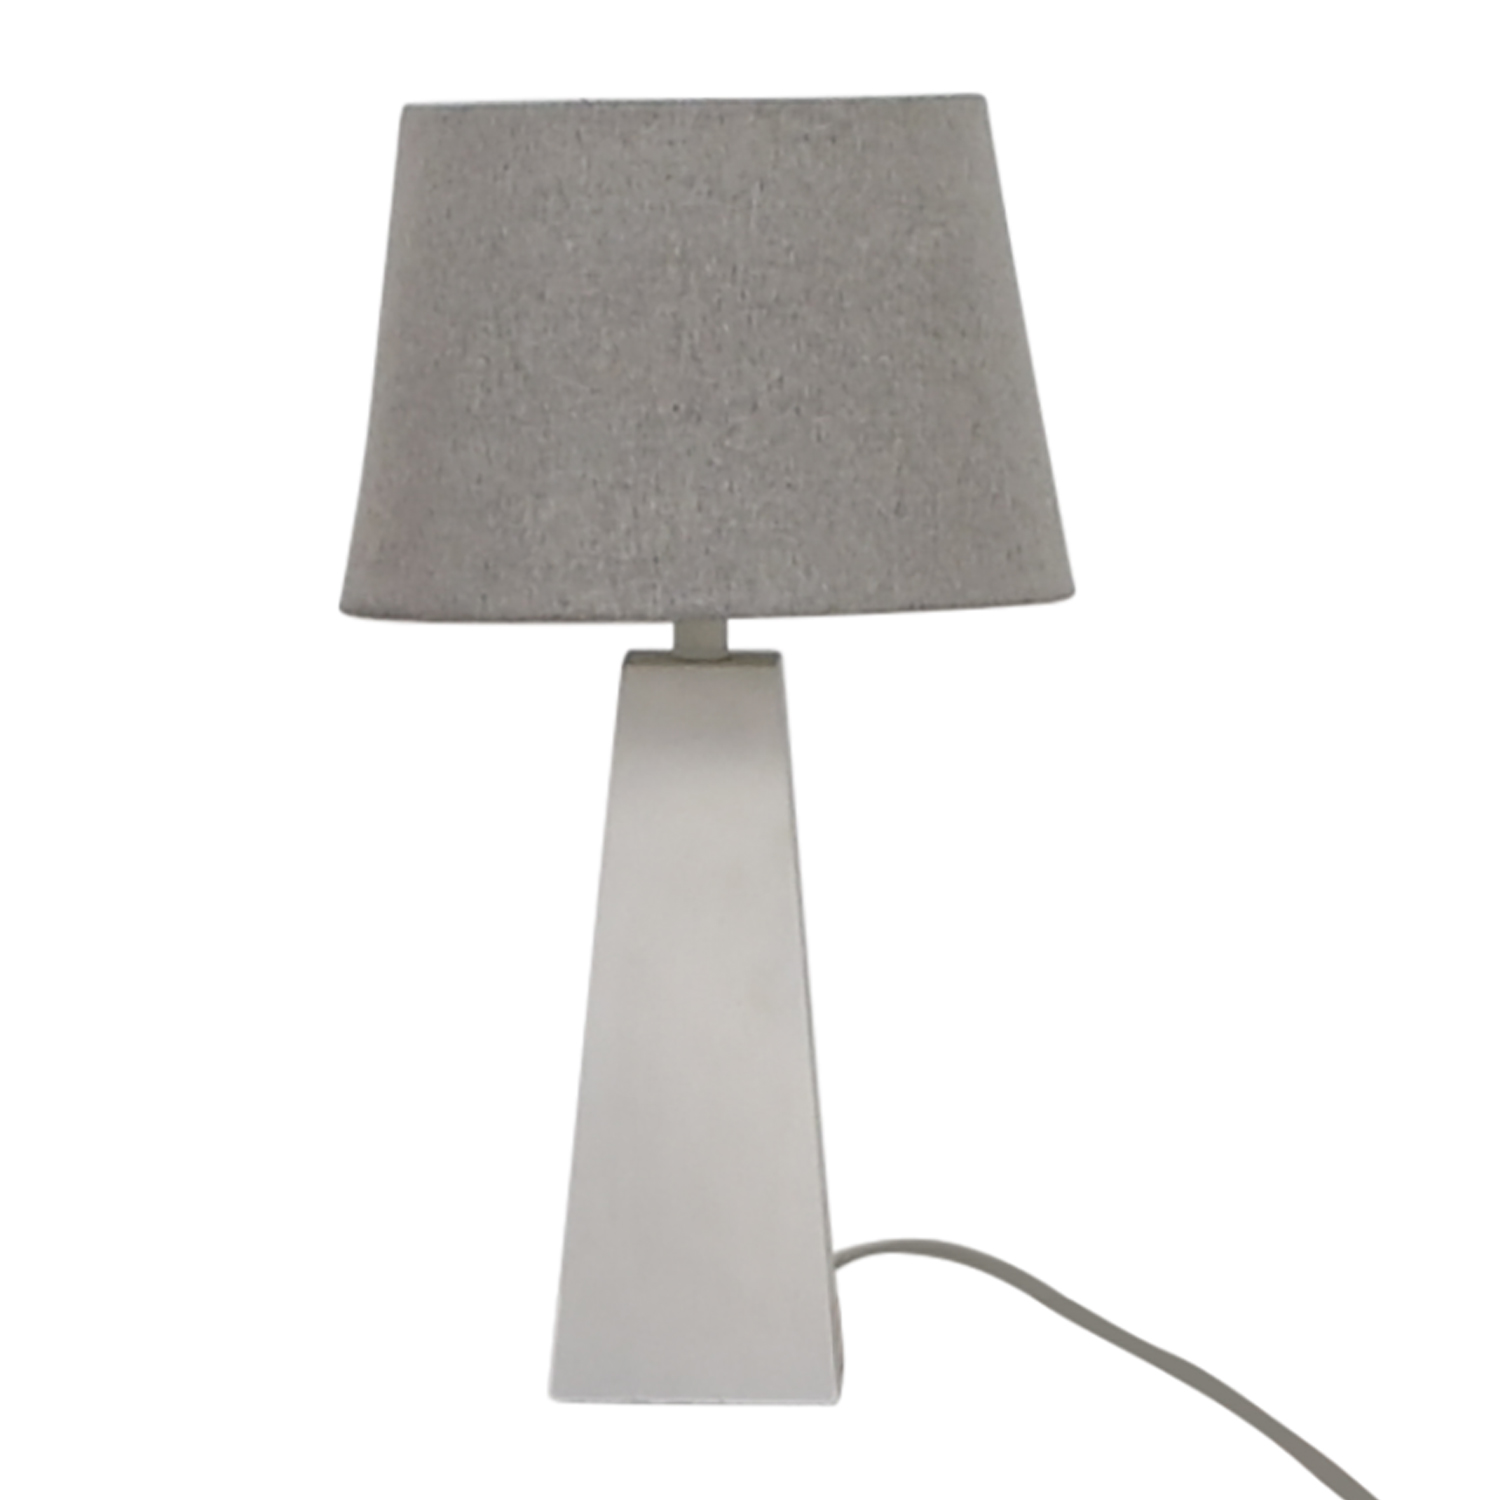 Target Target White Base with Silver Shade Lamp price